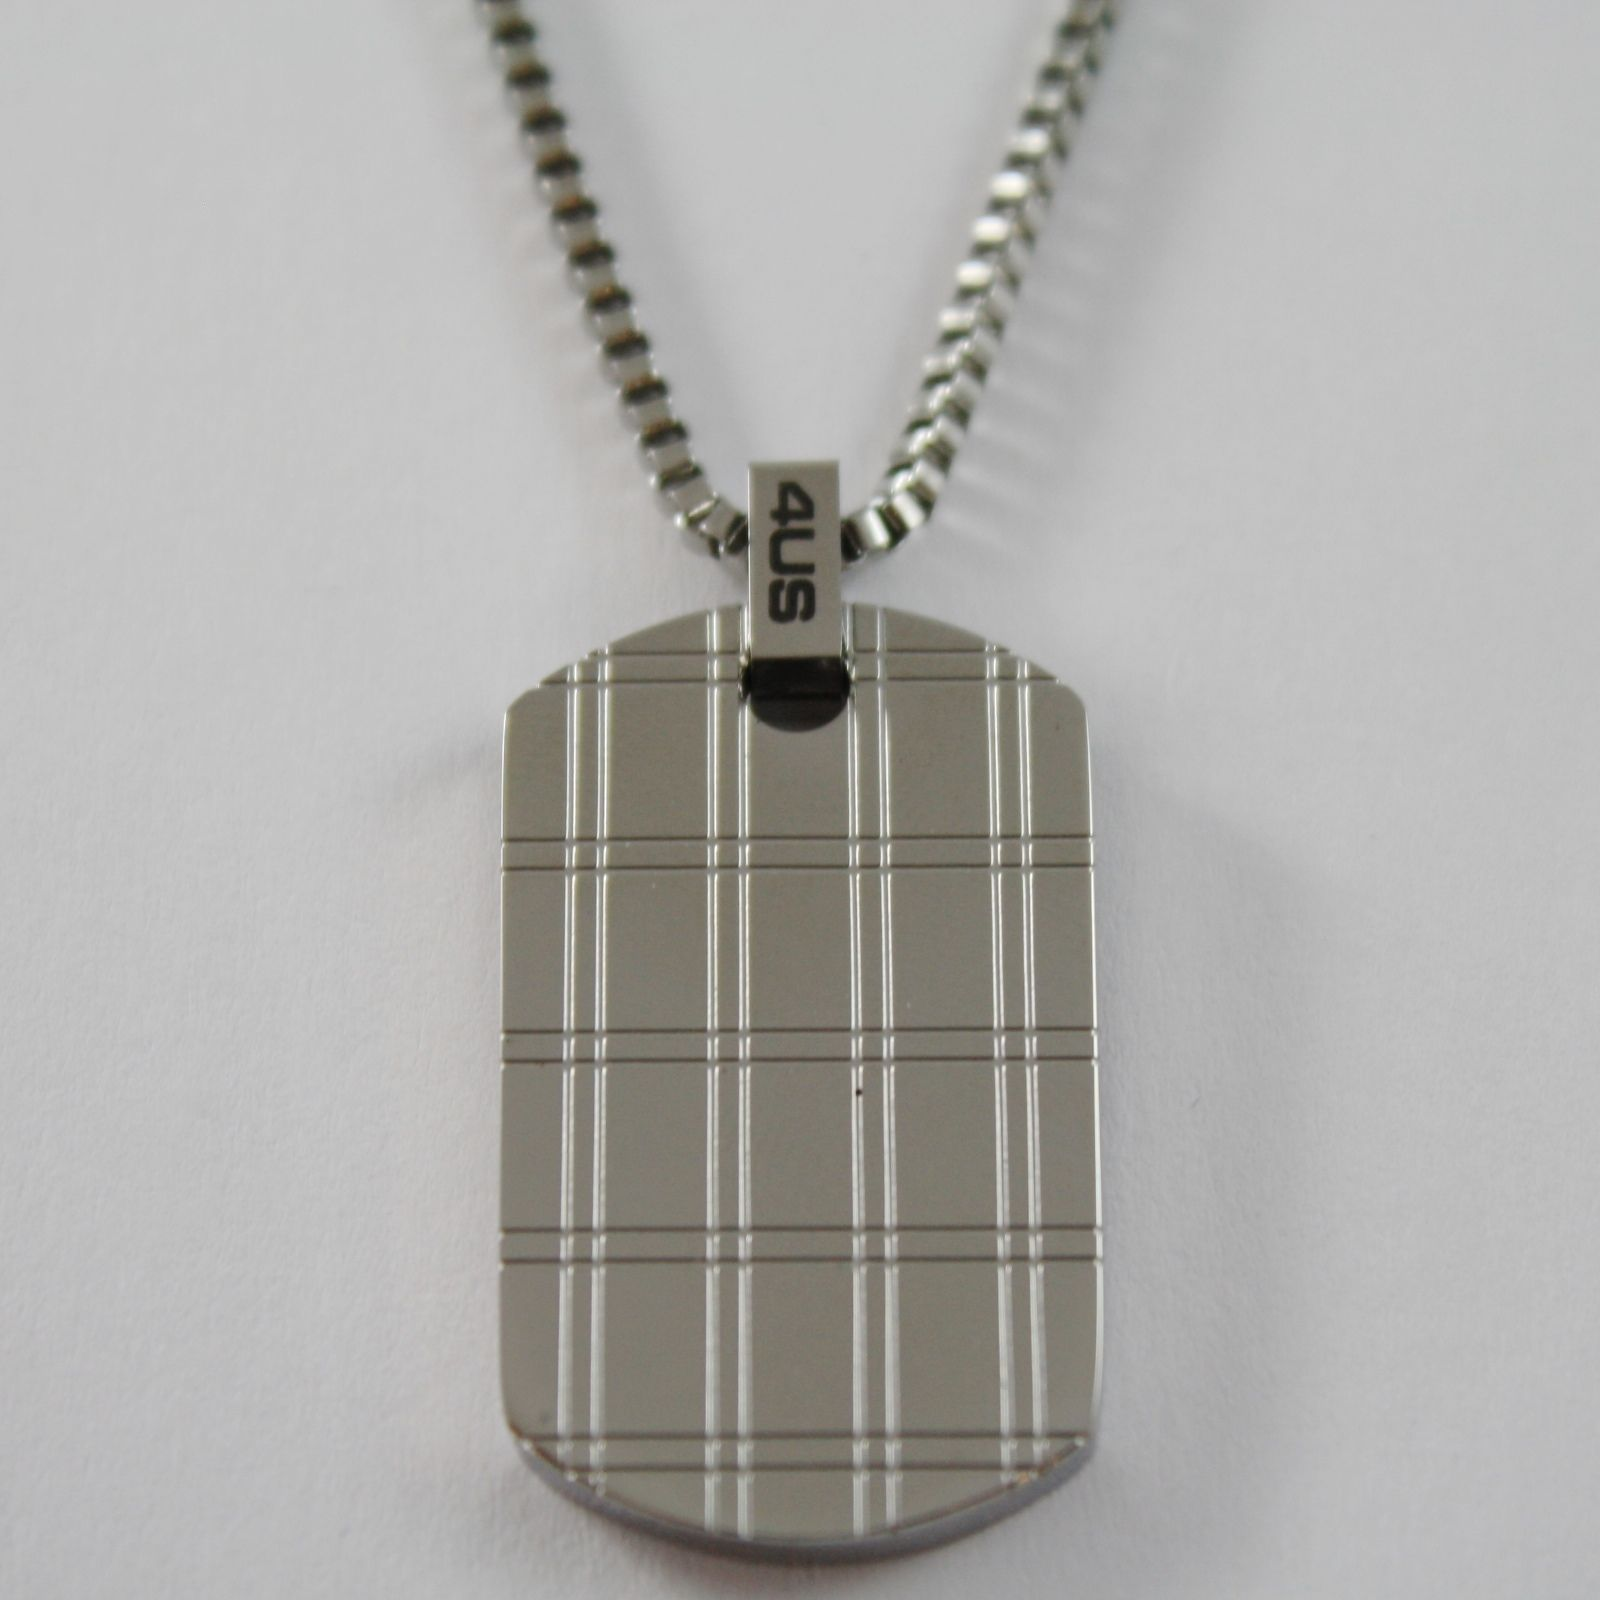 STAINLESS STEEL MILITARY PLATE WITH VENETIAN CHAIN 4US CESARE PACIOTTI NECKLACE